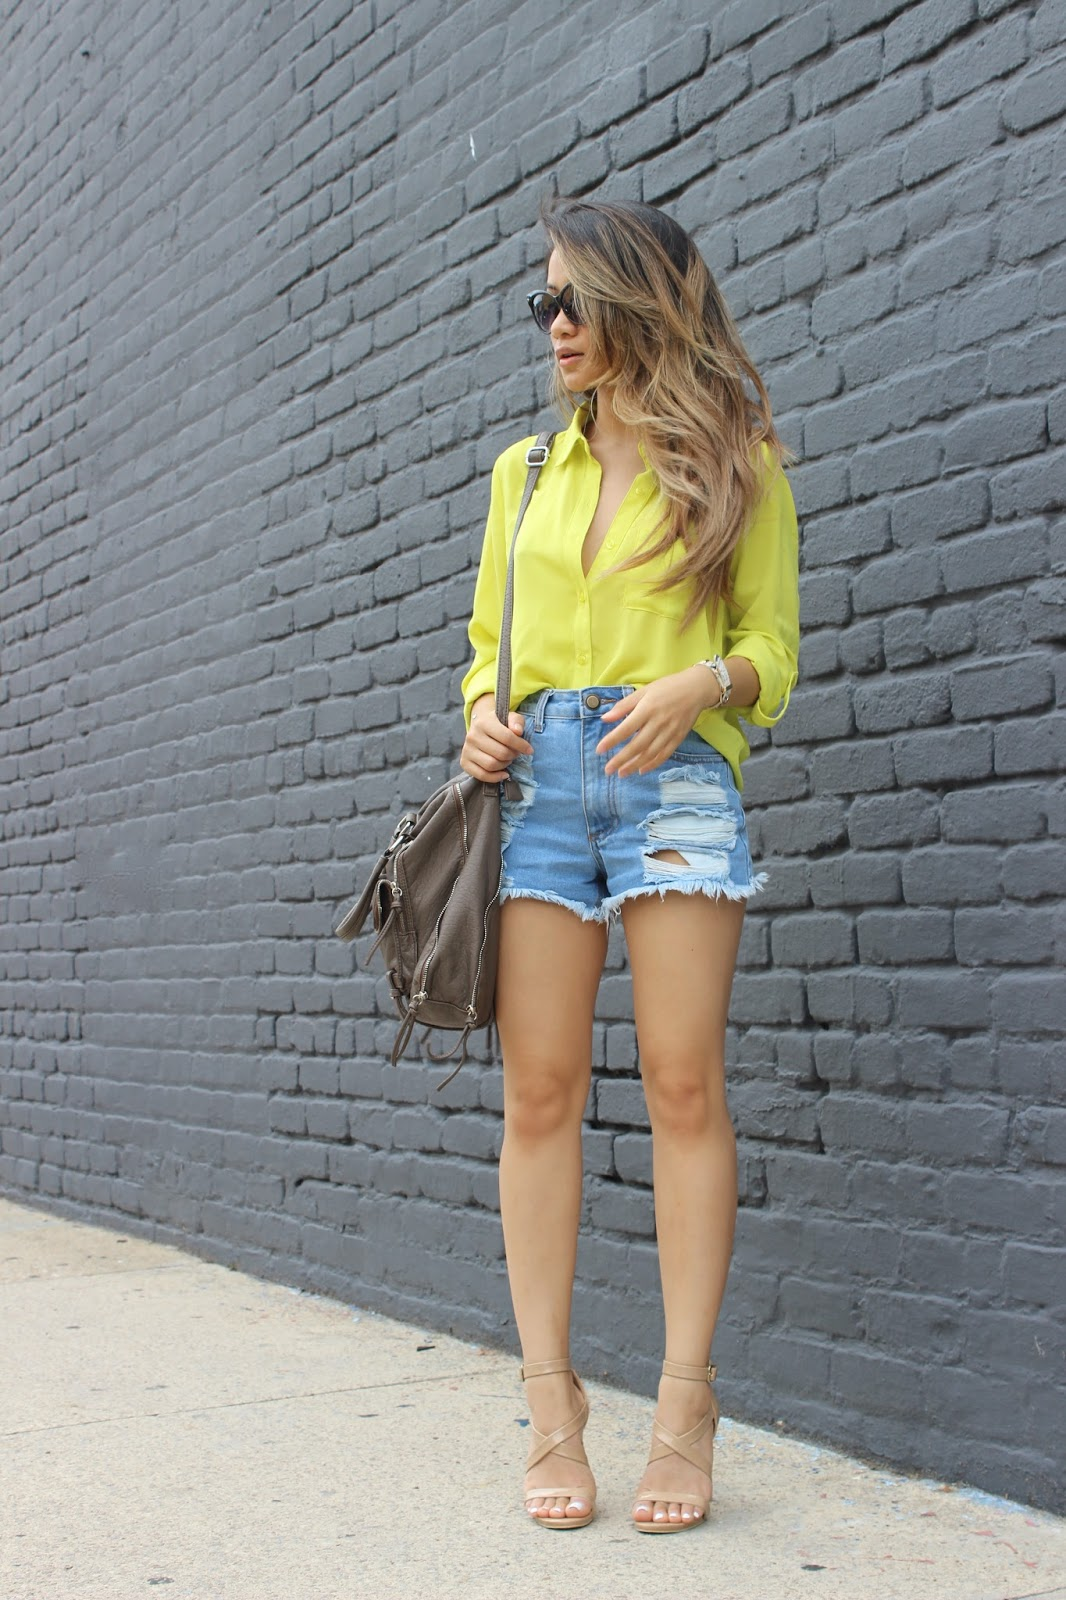 boyfriend jeans, boyfriend shorts, fashion blogger, melbanguyen, soletrekking, forever21,boyfriend shorts, melba nguyen, celine sunglasses, forever21 nude heels, ombre hair, fall fashion, sole trekking, new york fashion week,